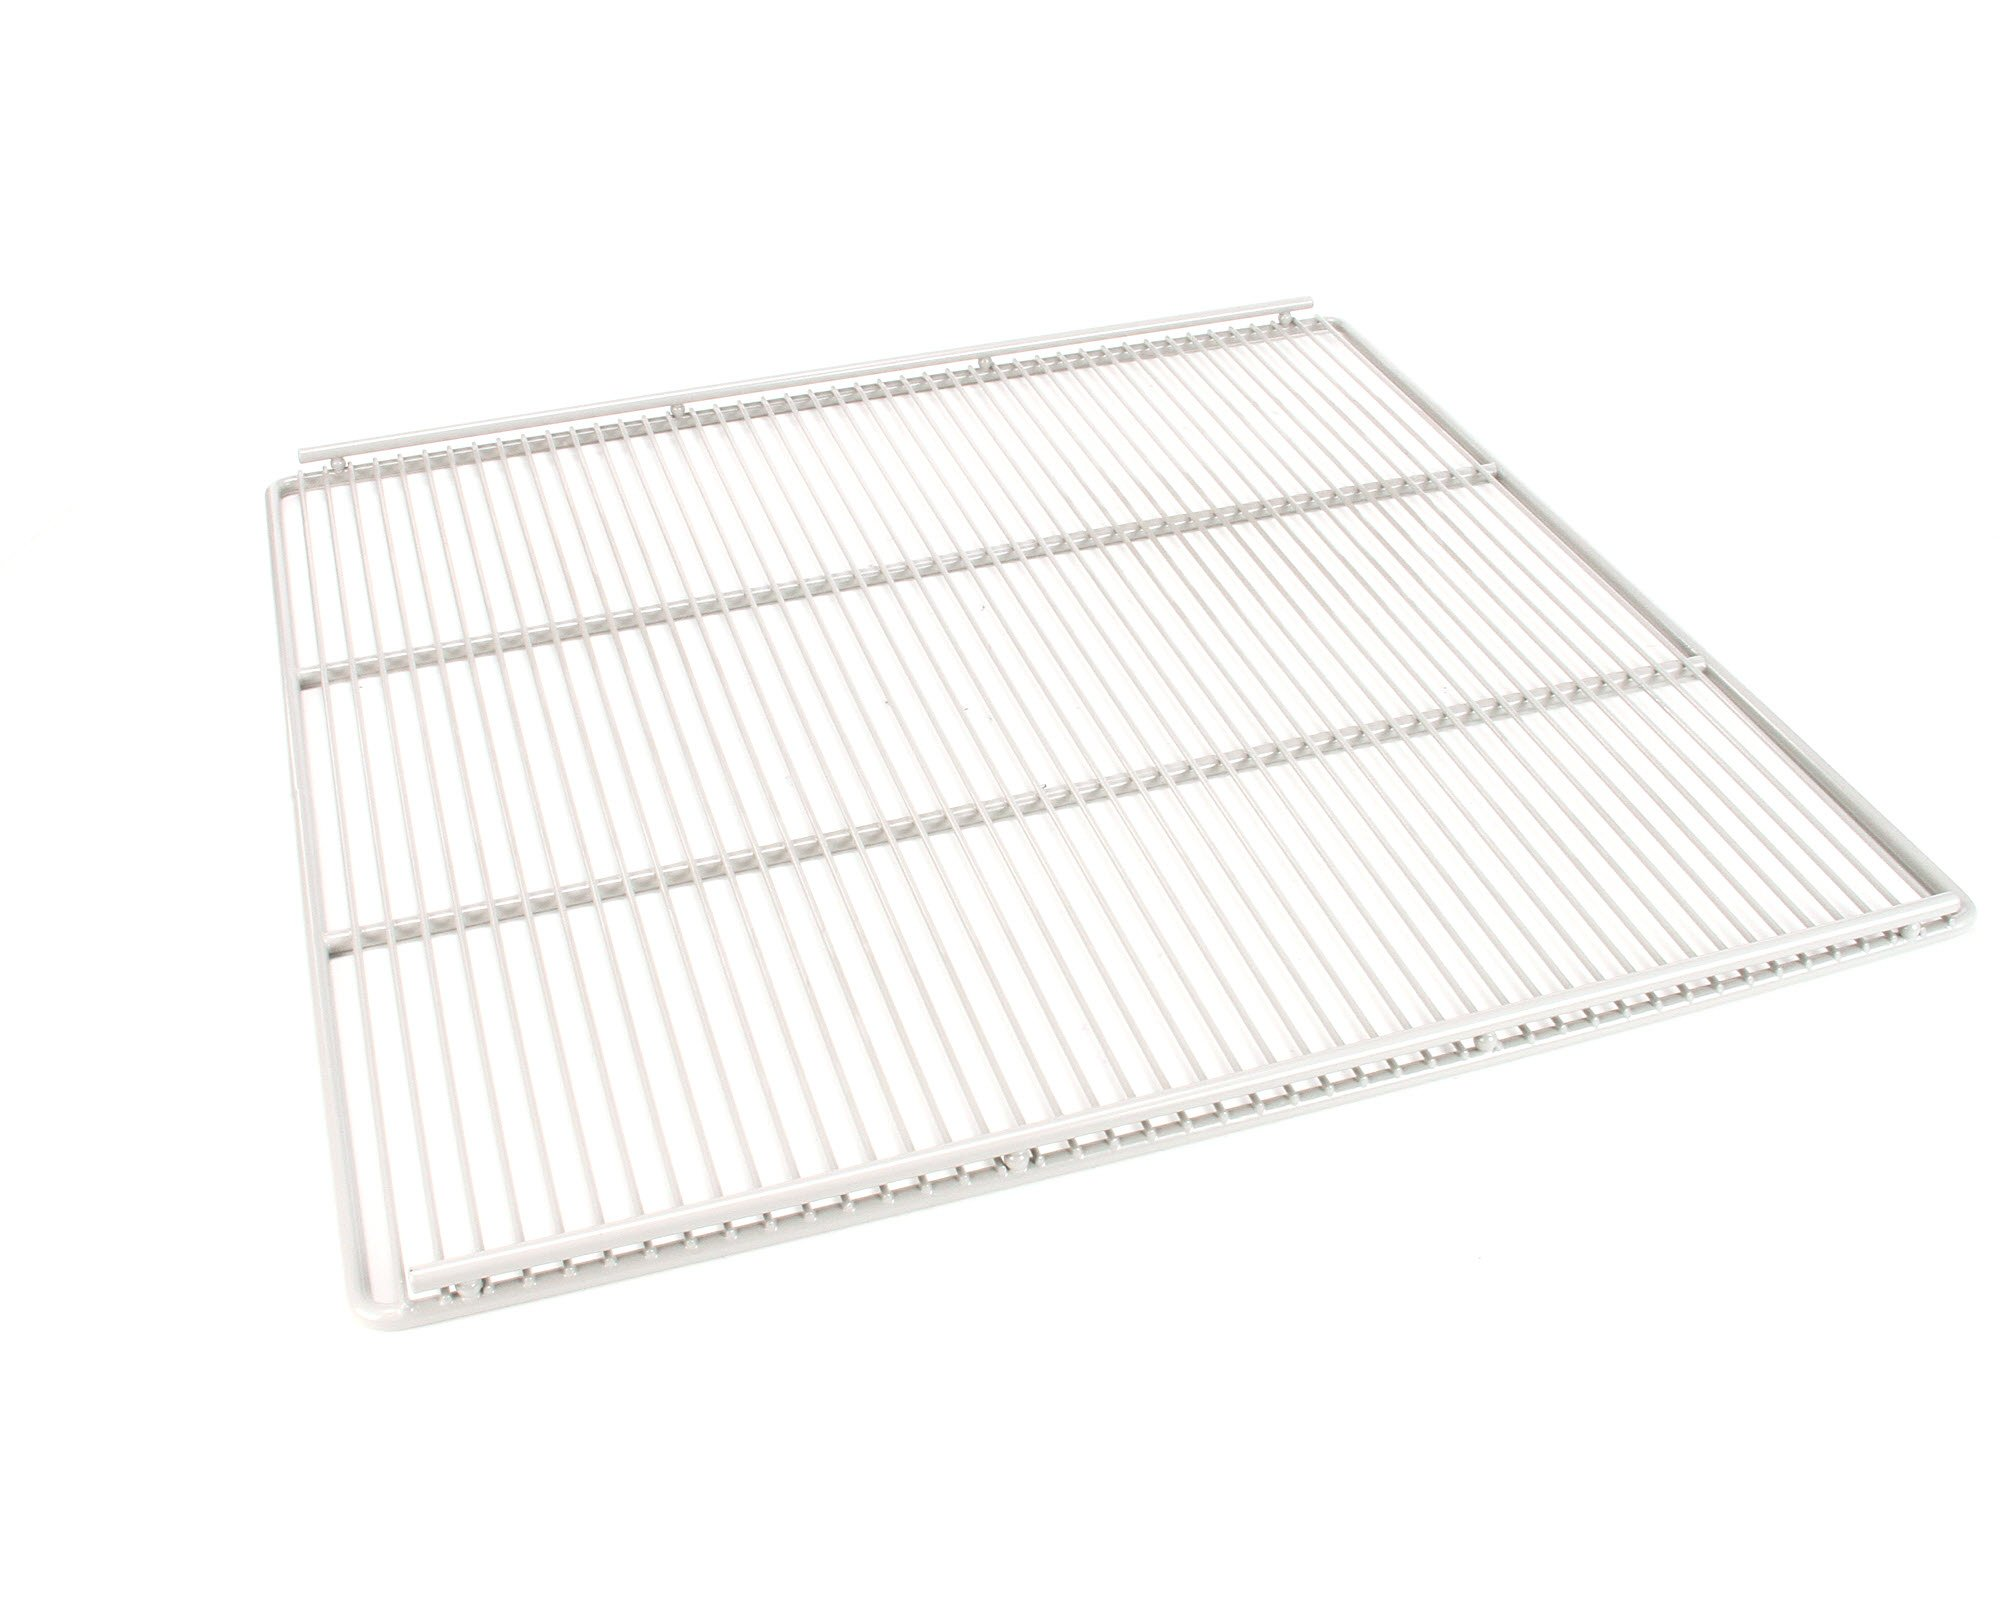 Beverage Air 403-463D Coated Wire Shelf Works with Your Ri18 Series, 30'' Height, 24'' Width, 5'' Length